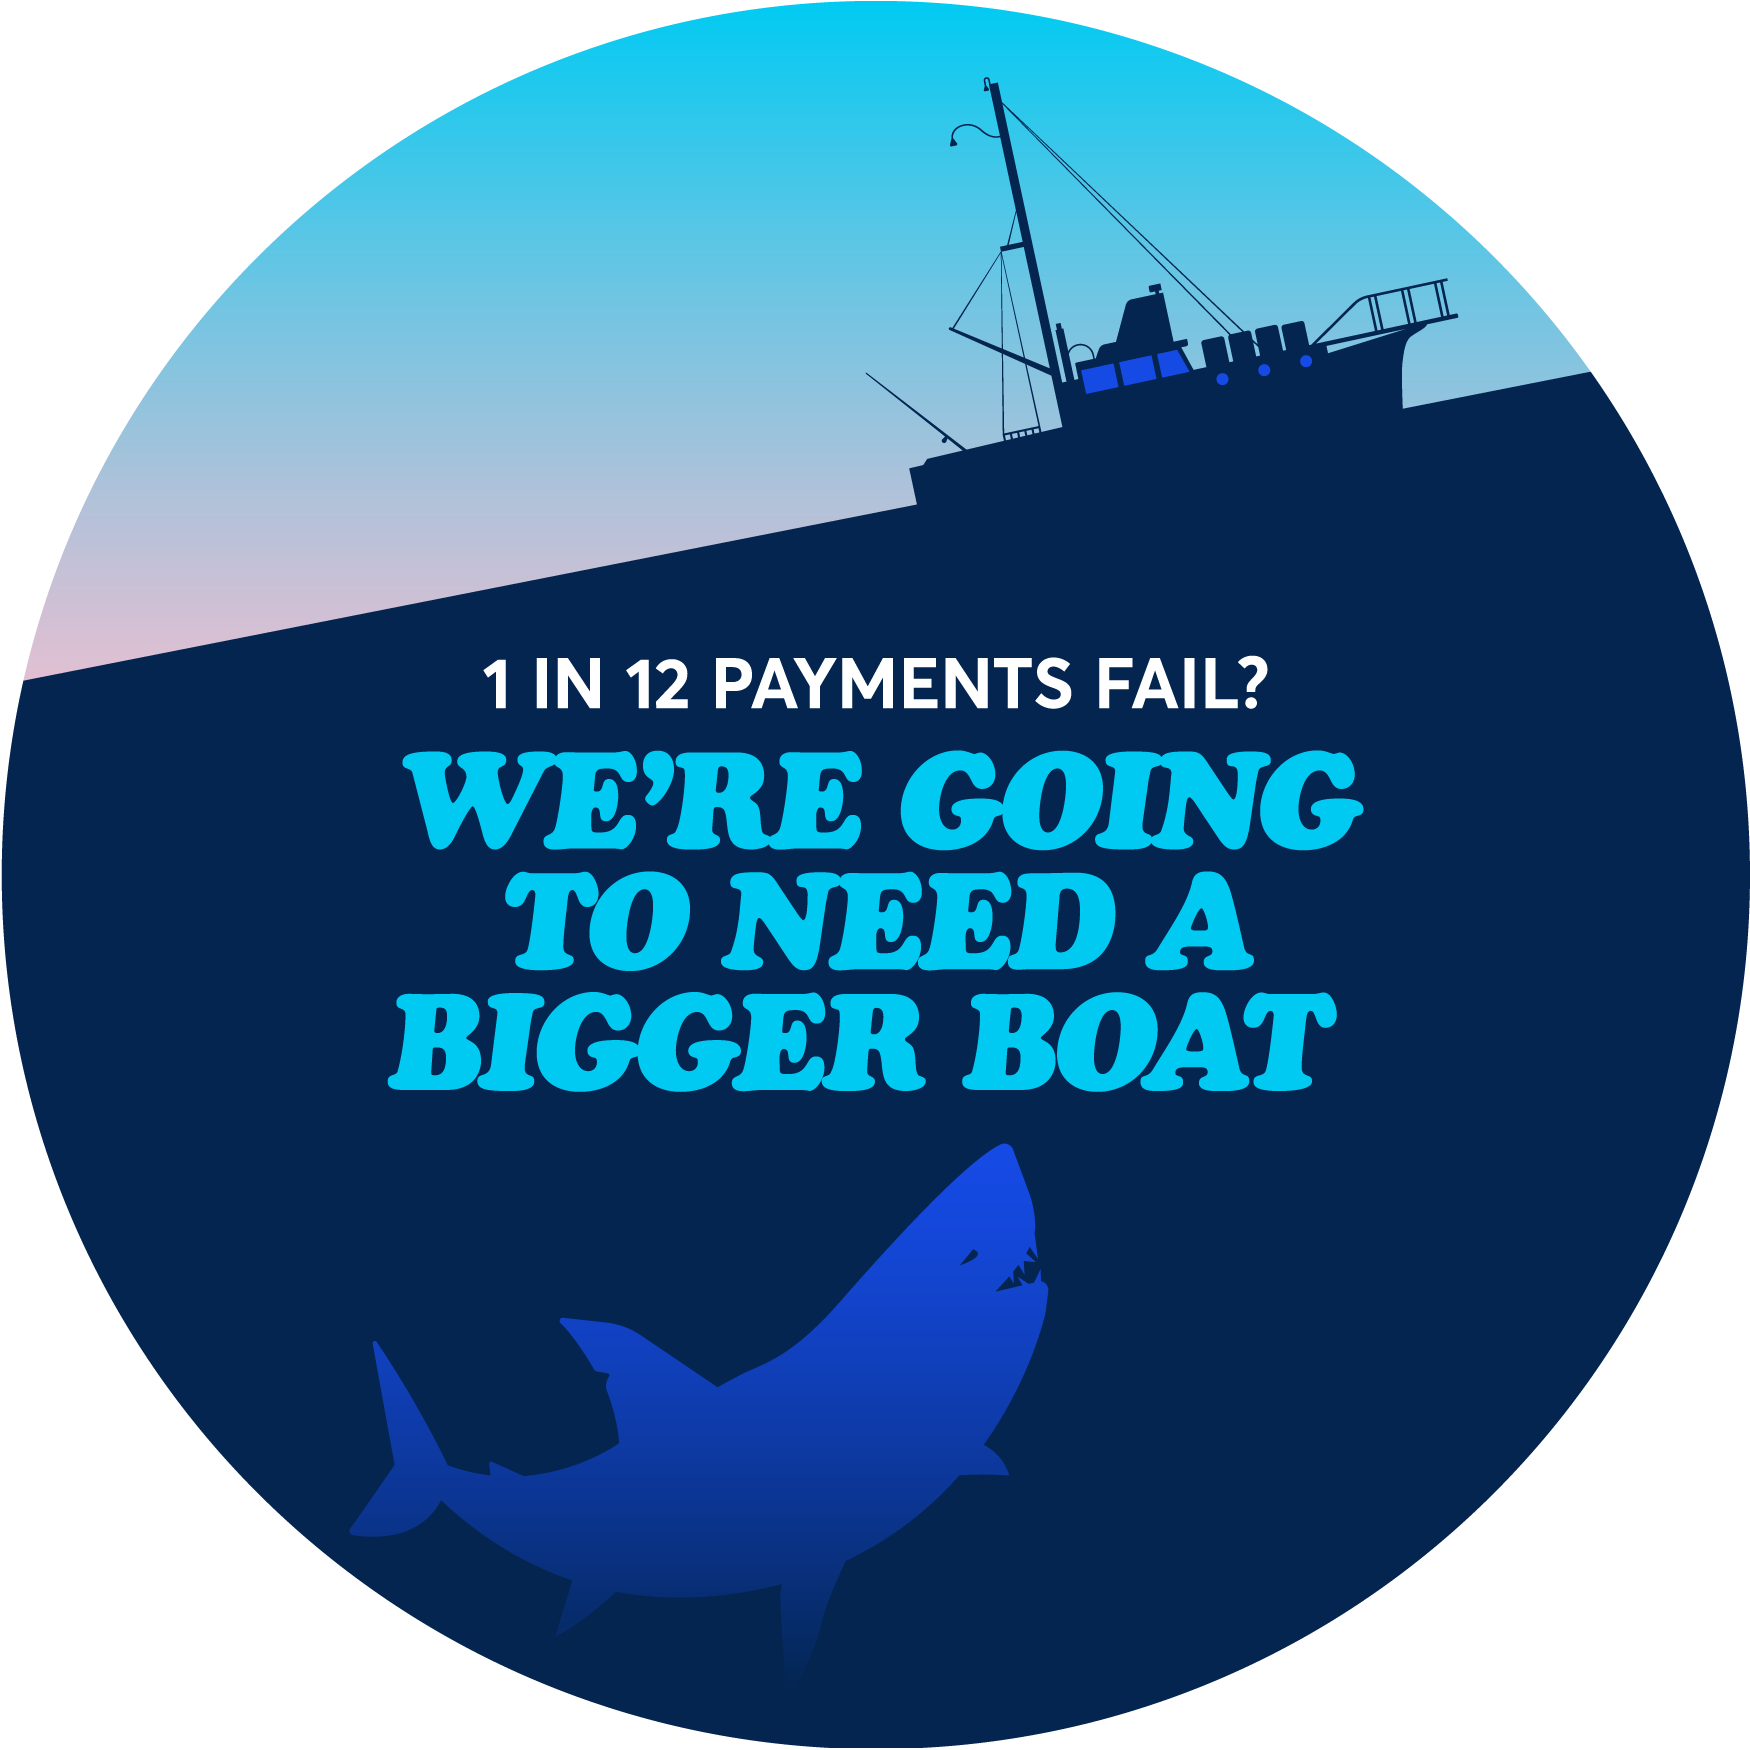 Save yourself from the jaws of failed payments